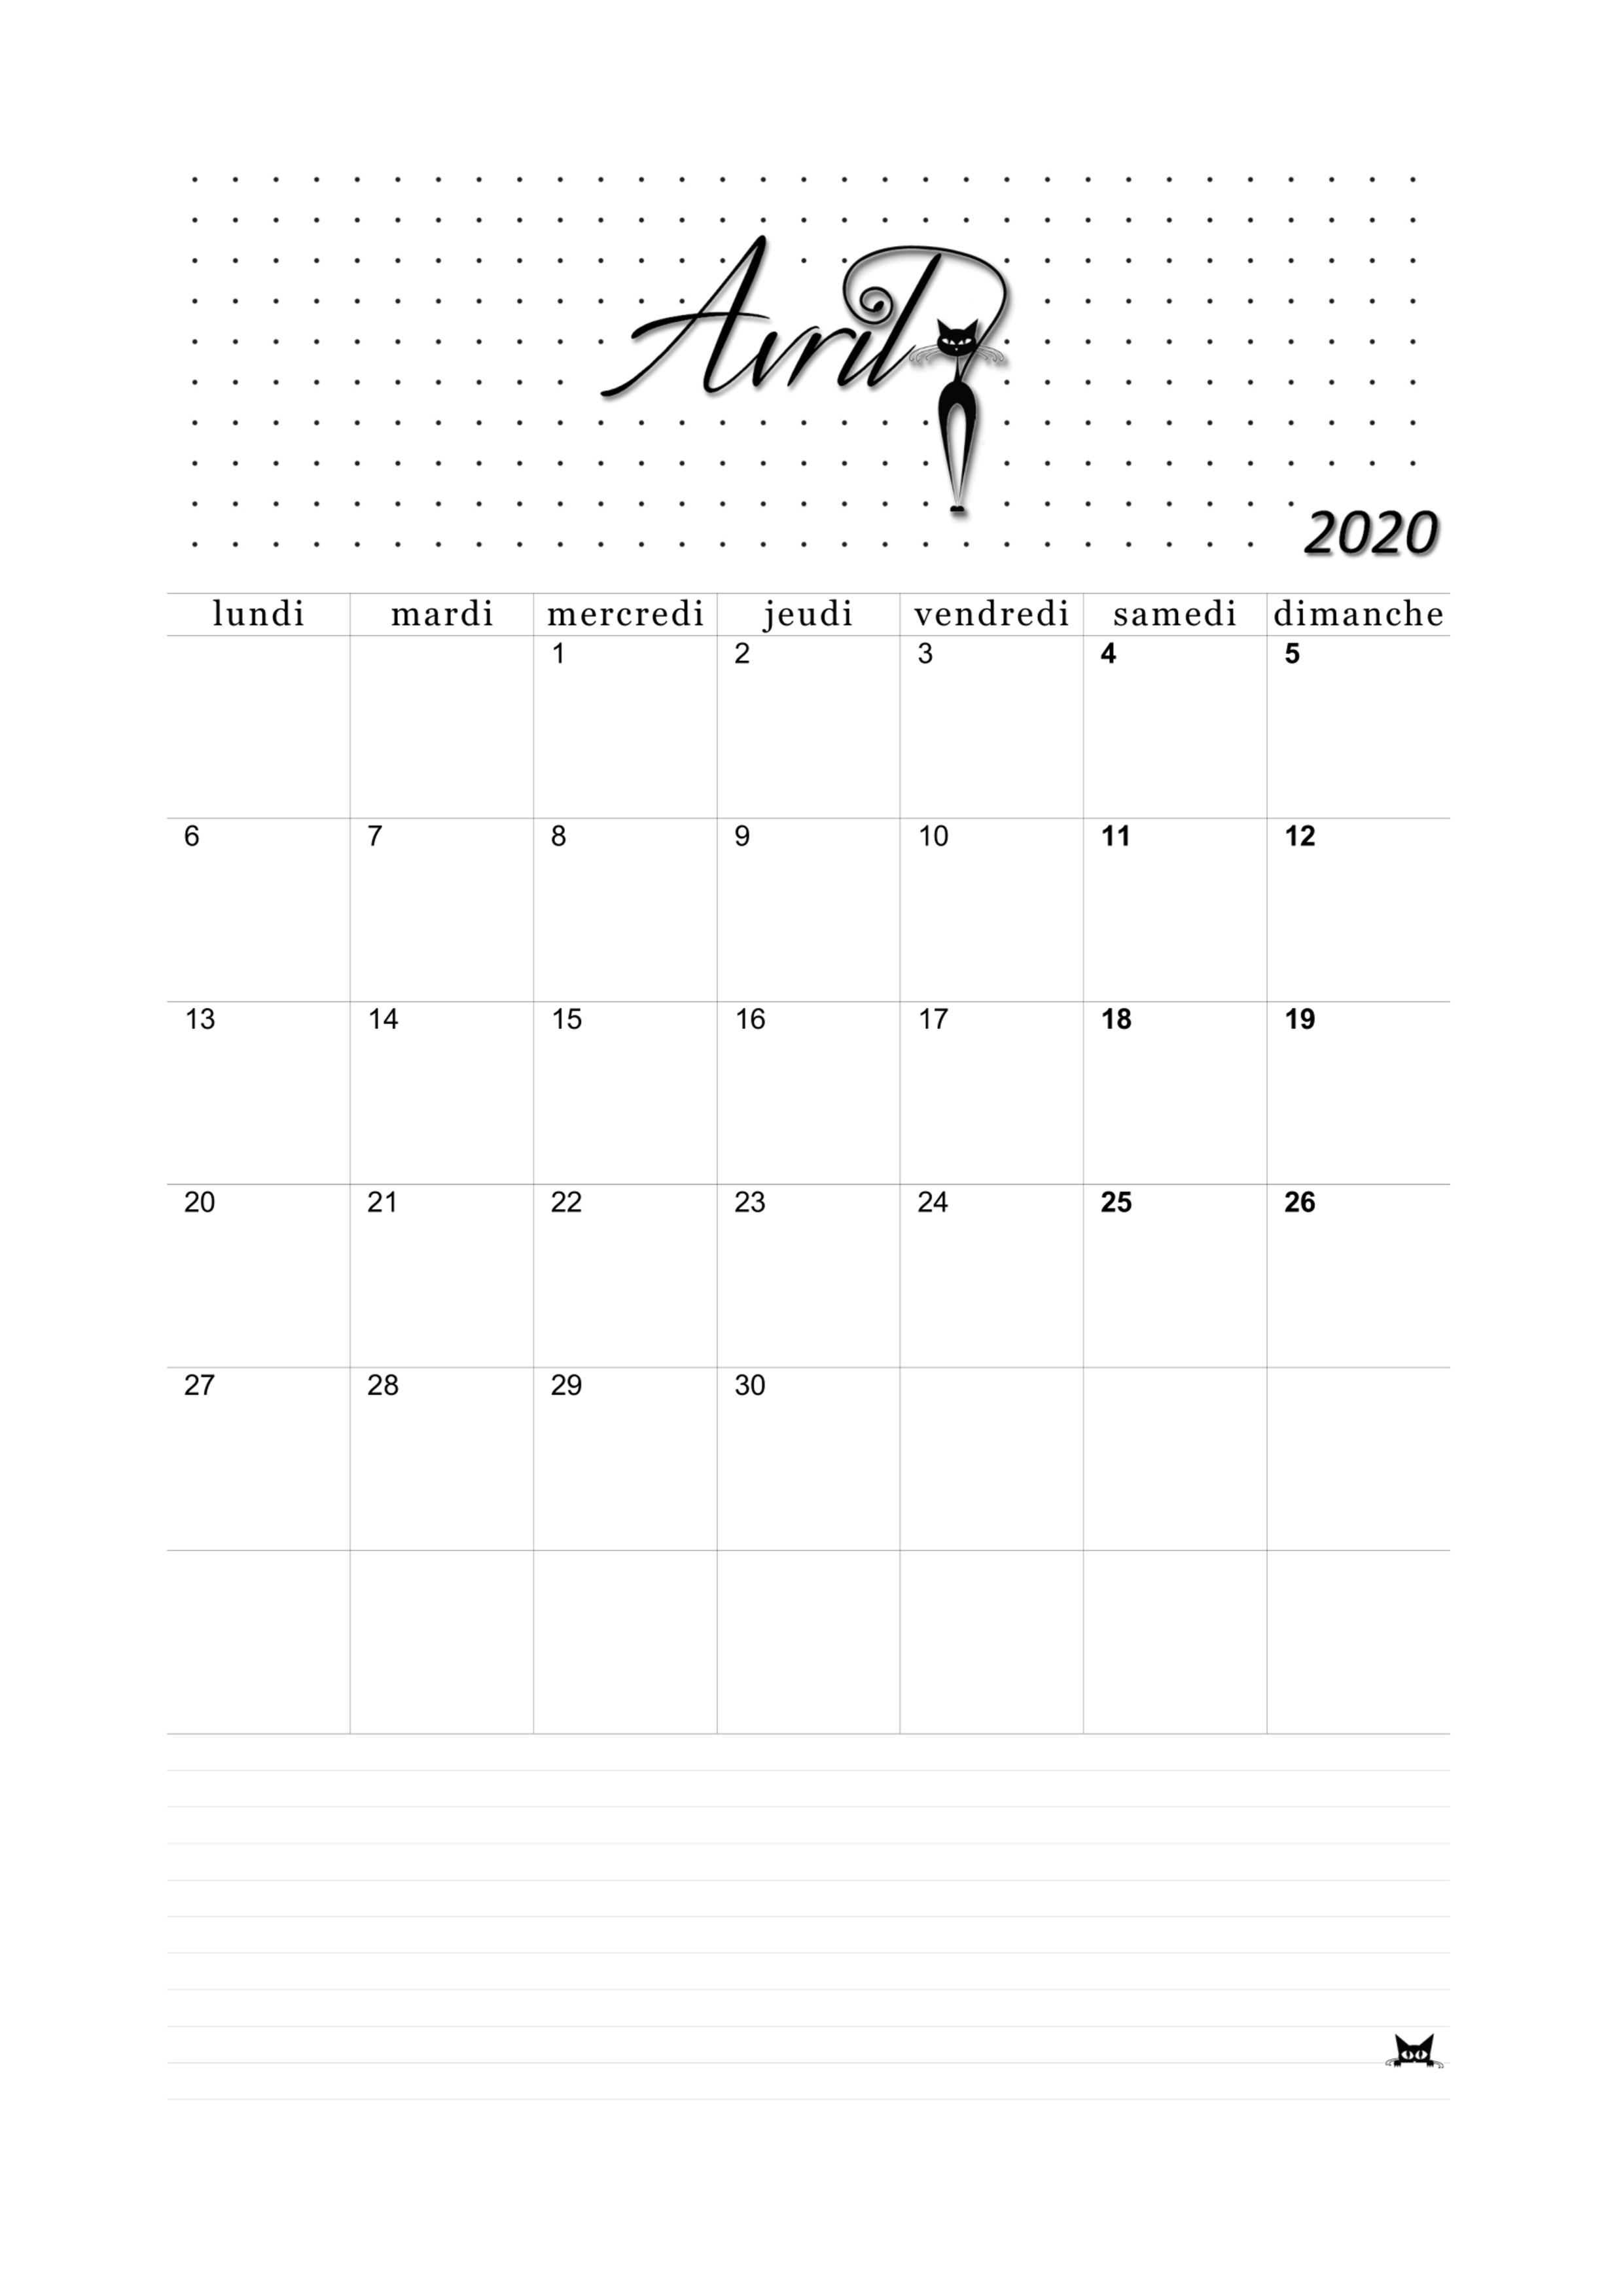 Calendrier 2020 Calendrier Gratuit C3 A0 T Ef Bf Bdl Ef Bf Bdcharger Ou C3 A0 Imprimer Lycee Jean Mermoz Calendrier Scolaire